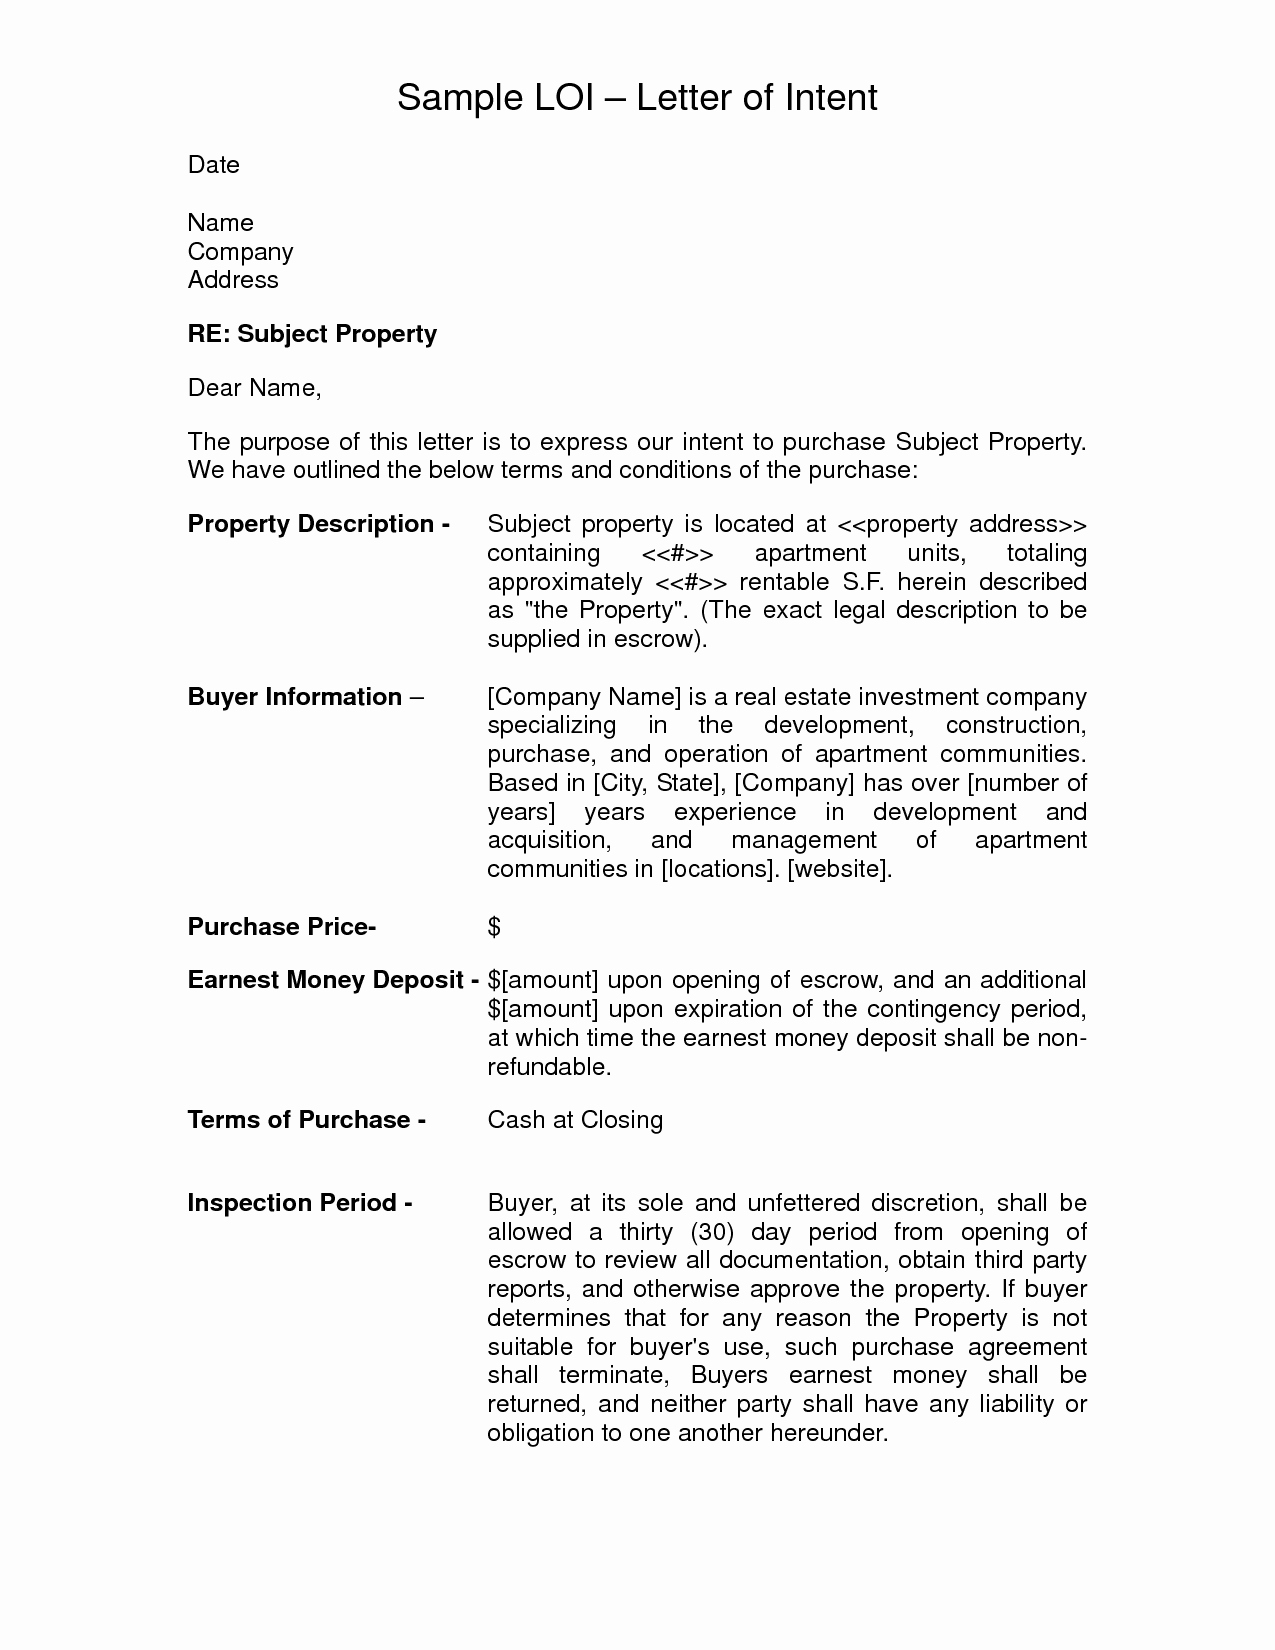 Letter Of Intent to Purchase Real Estate Template - Letter Intent to Purchase Property Template Beautiful Letter